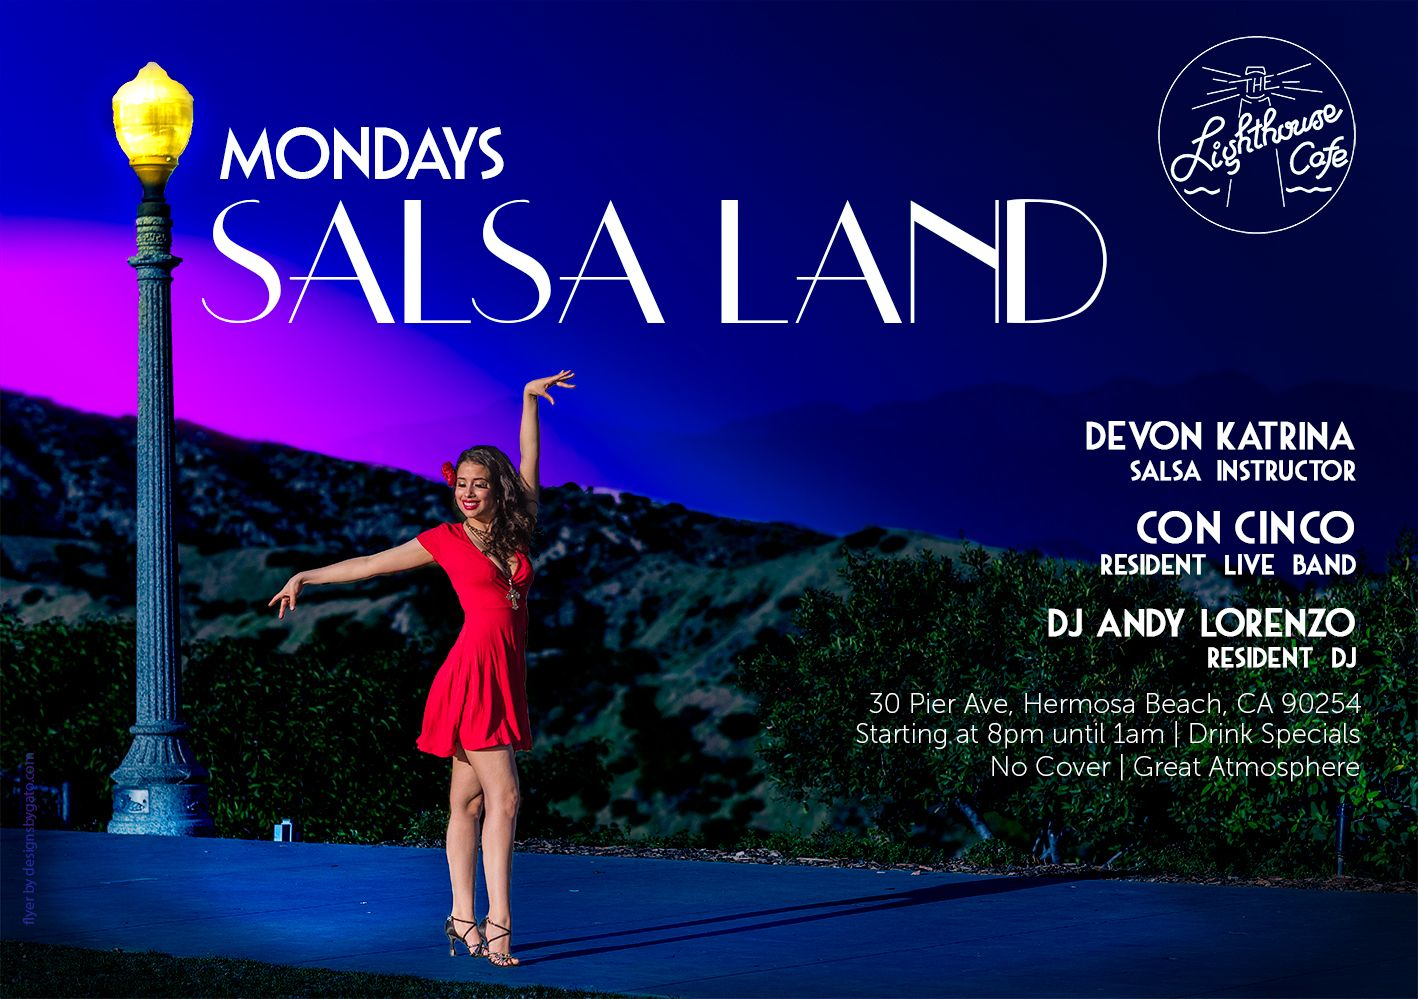 Salsa Land! At The Lighthouse Cafe | Meetup Within Salsa By The Bay Calender